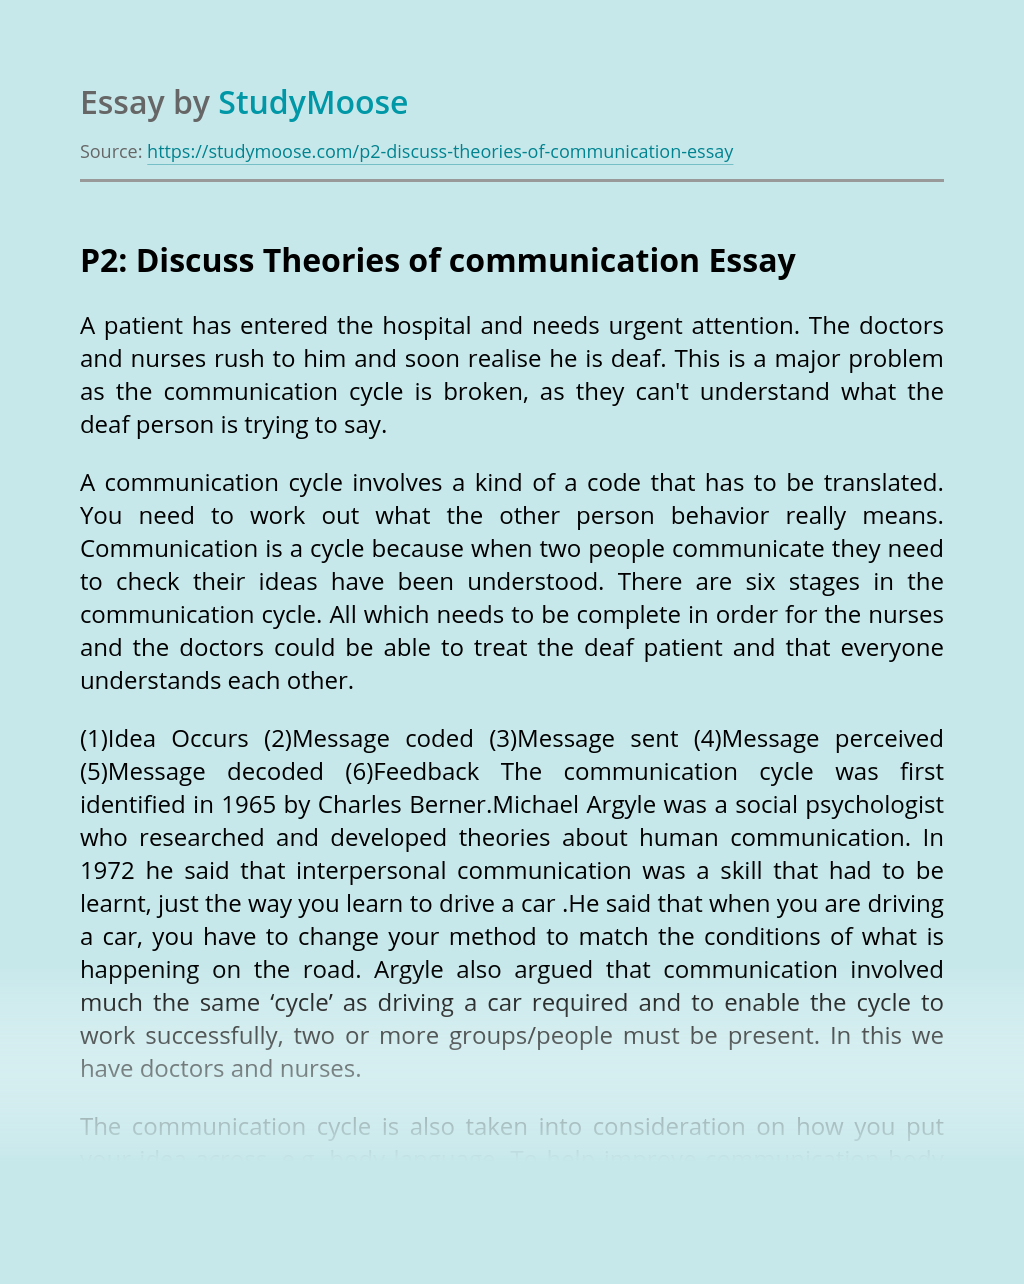 P2: Discuss Theories of communication